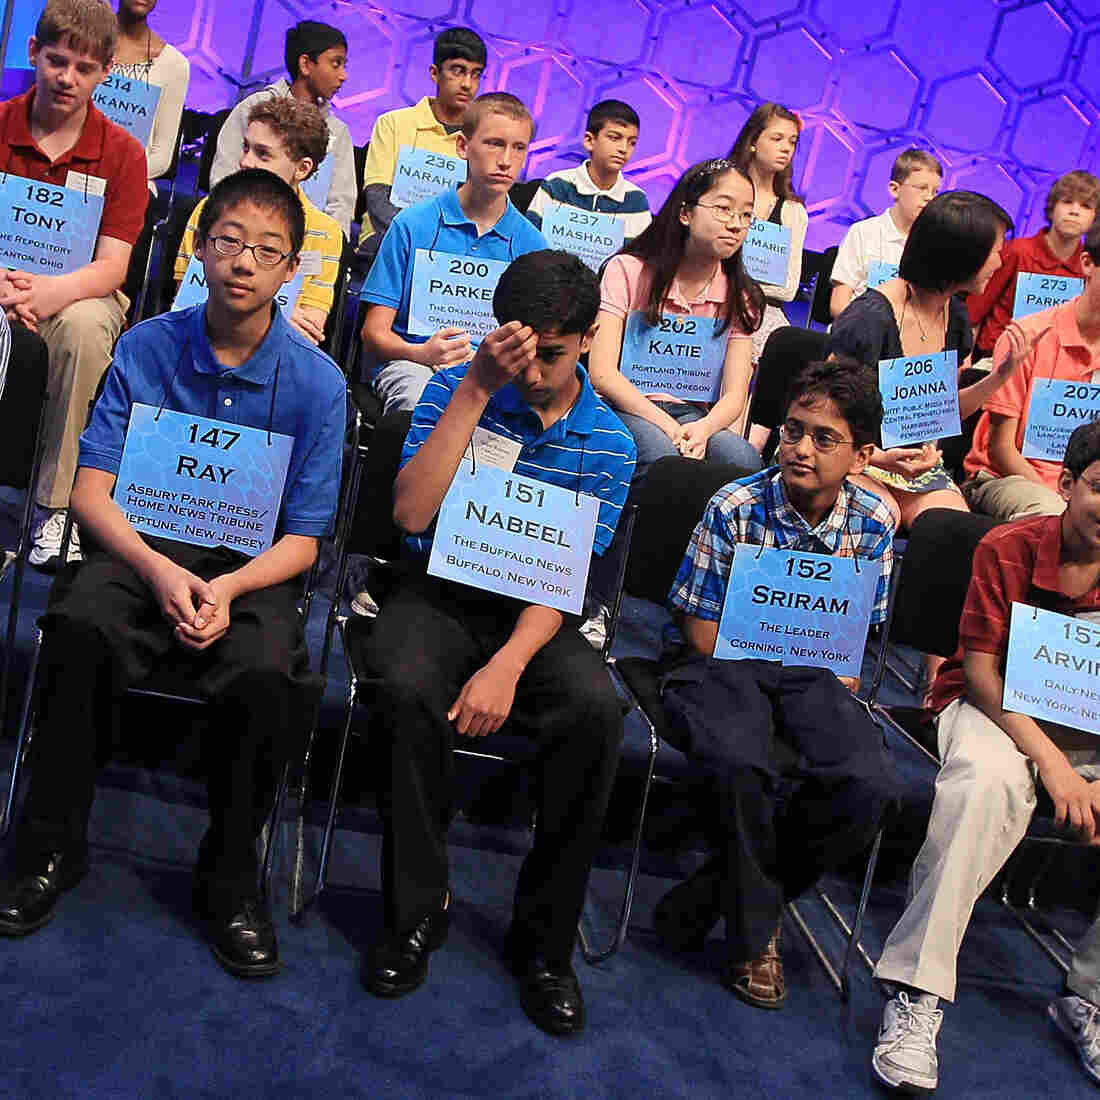 Thank G-O-O-D-N-E-S-S: The National Spelling Bee Adds Meaning